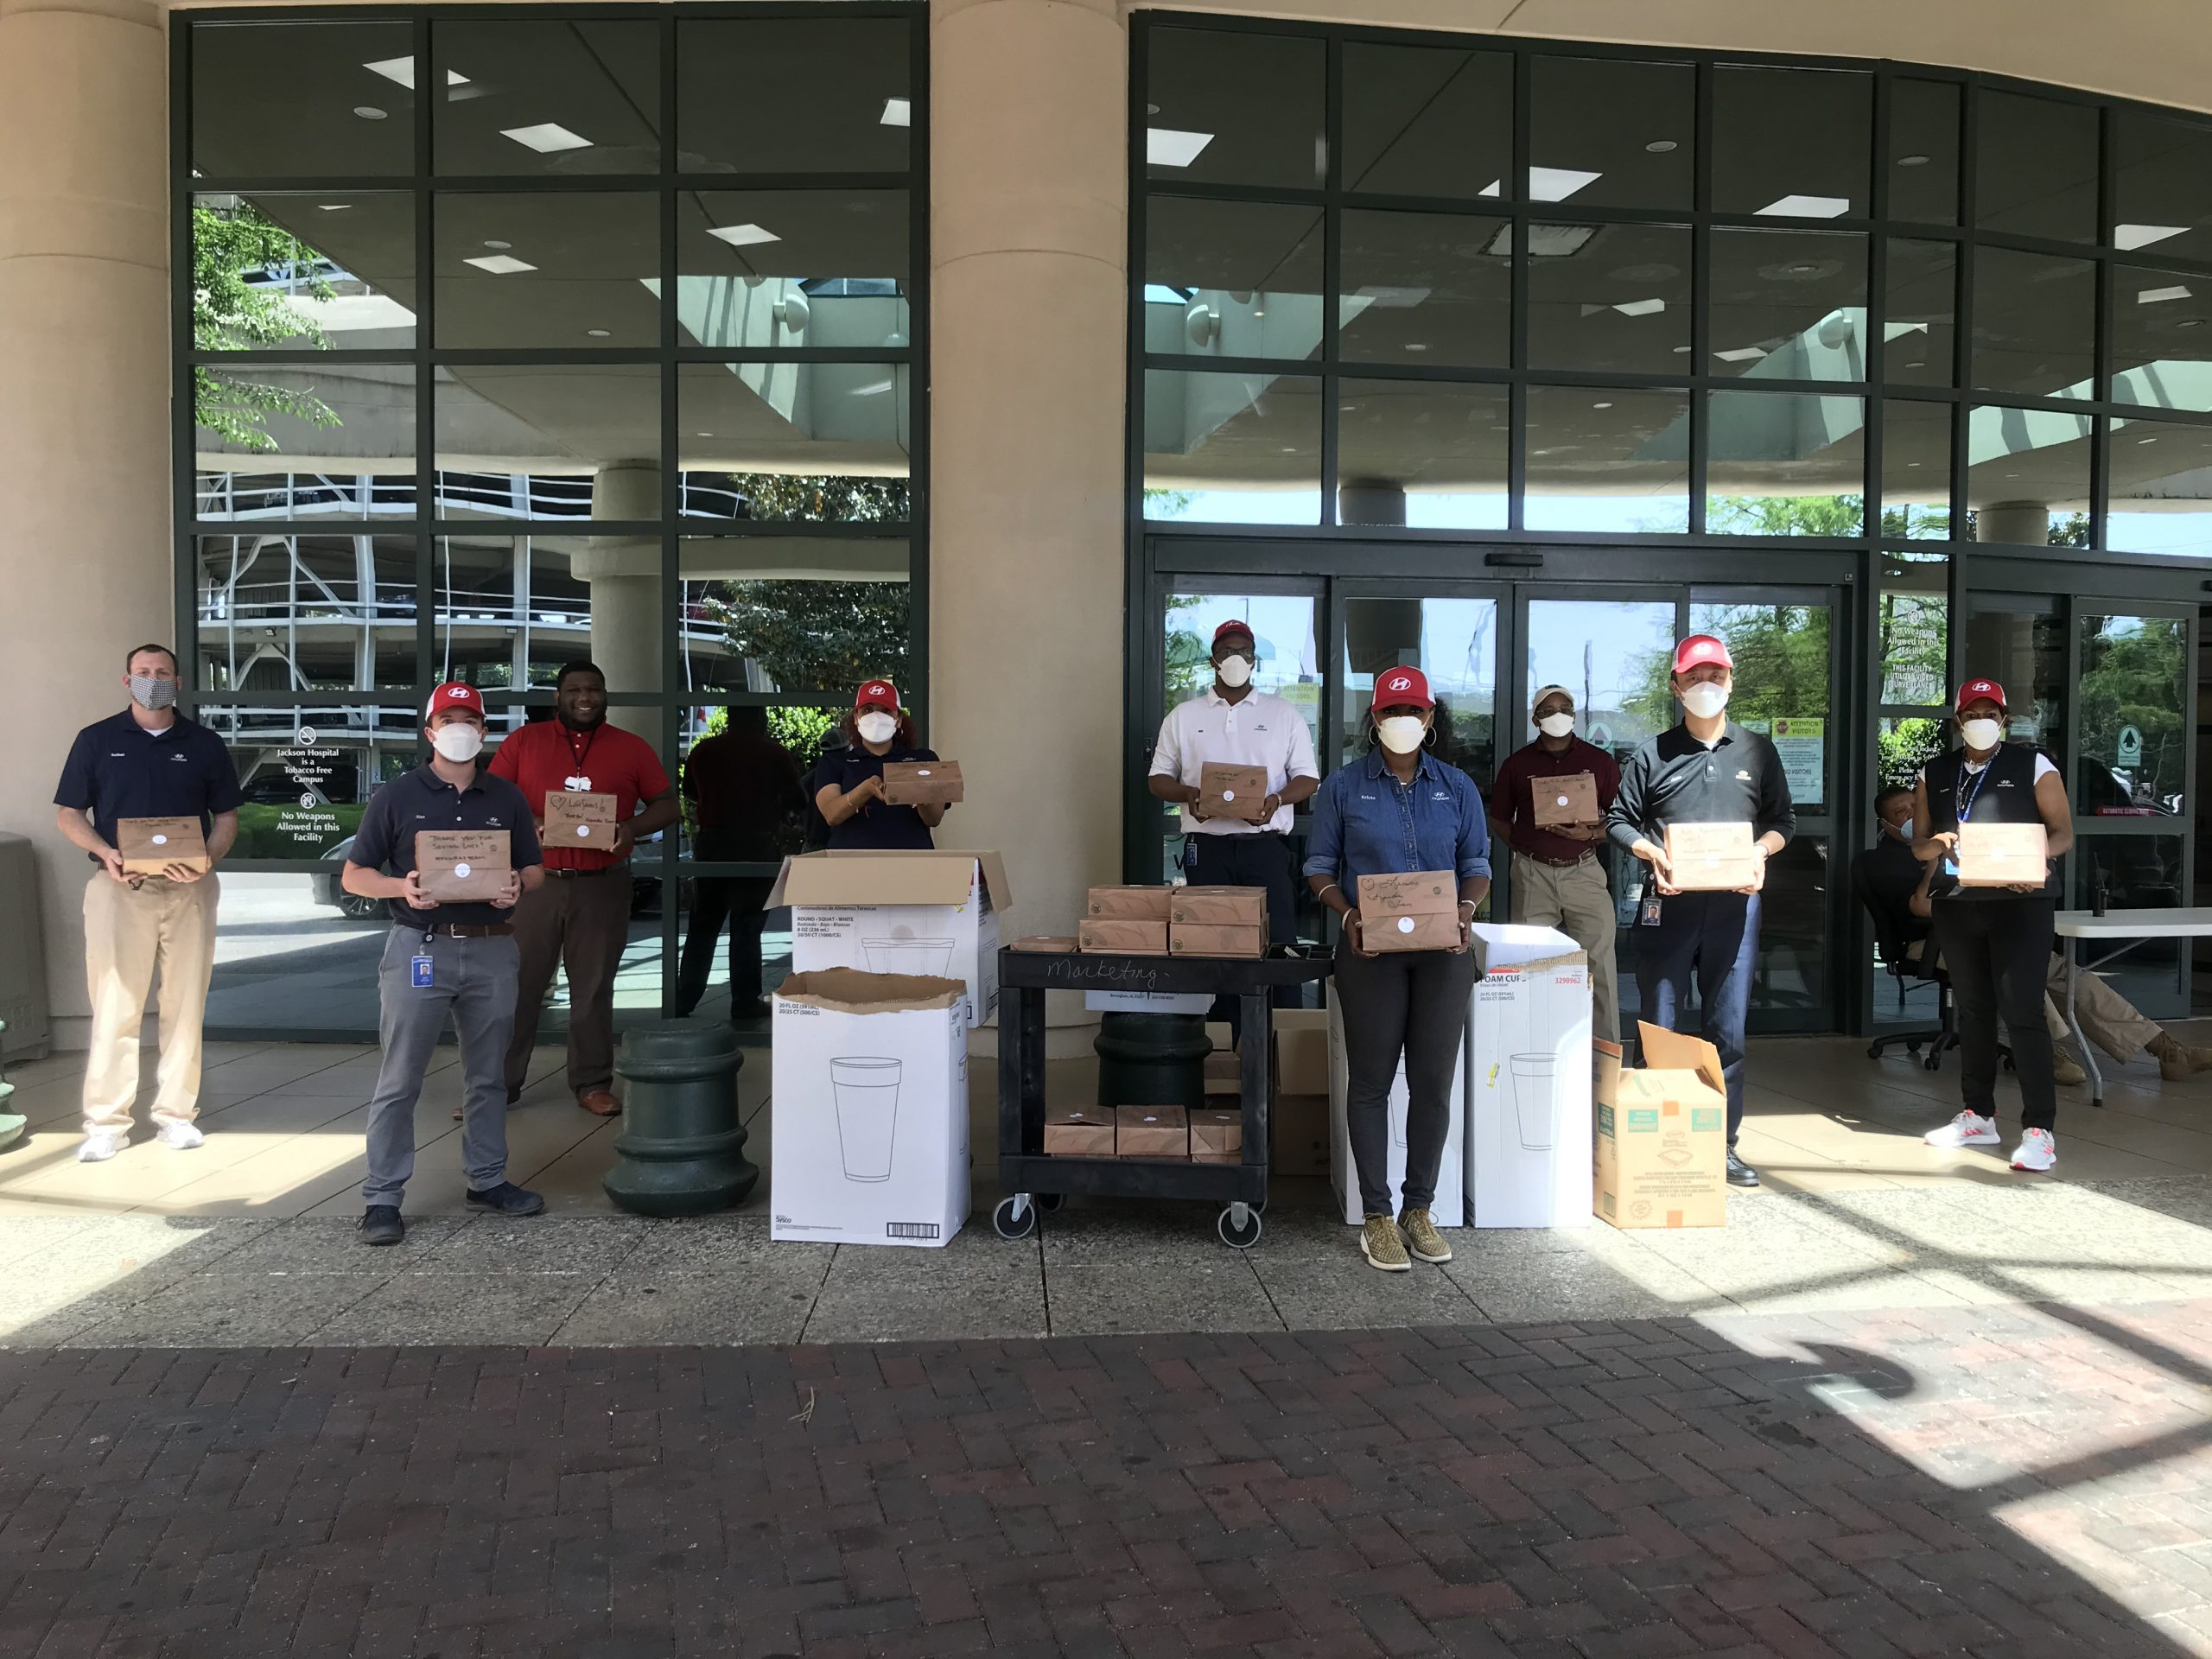 HYUNDAI MOTOR MANUFACTURING ALABAMA DONATES FREE LUNCHES TO MONTGOMERY AREA HEALTH PROVIDERS